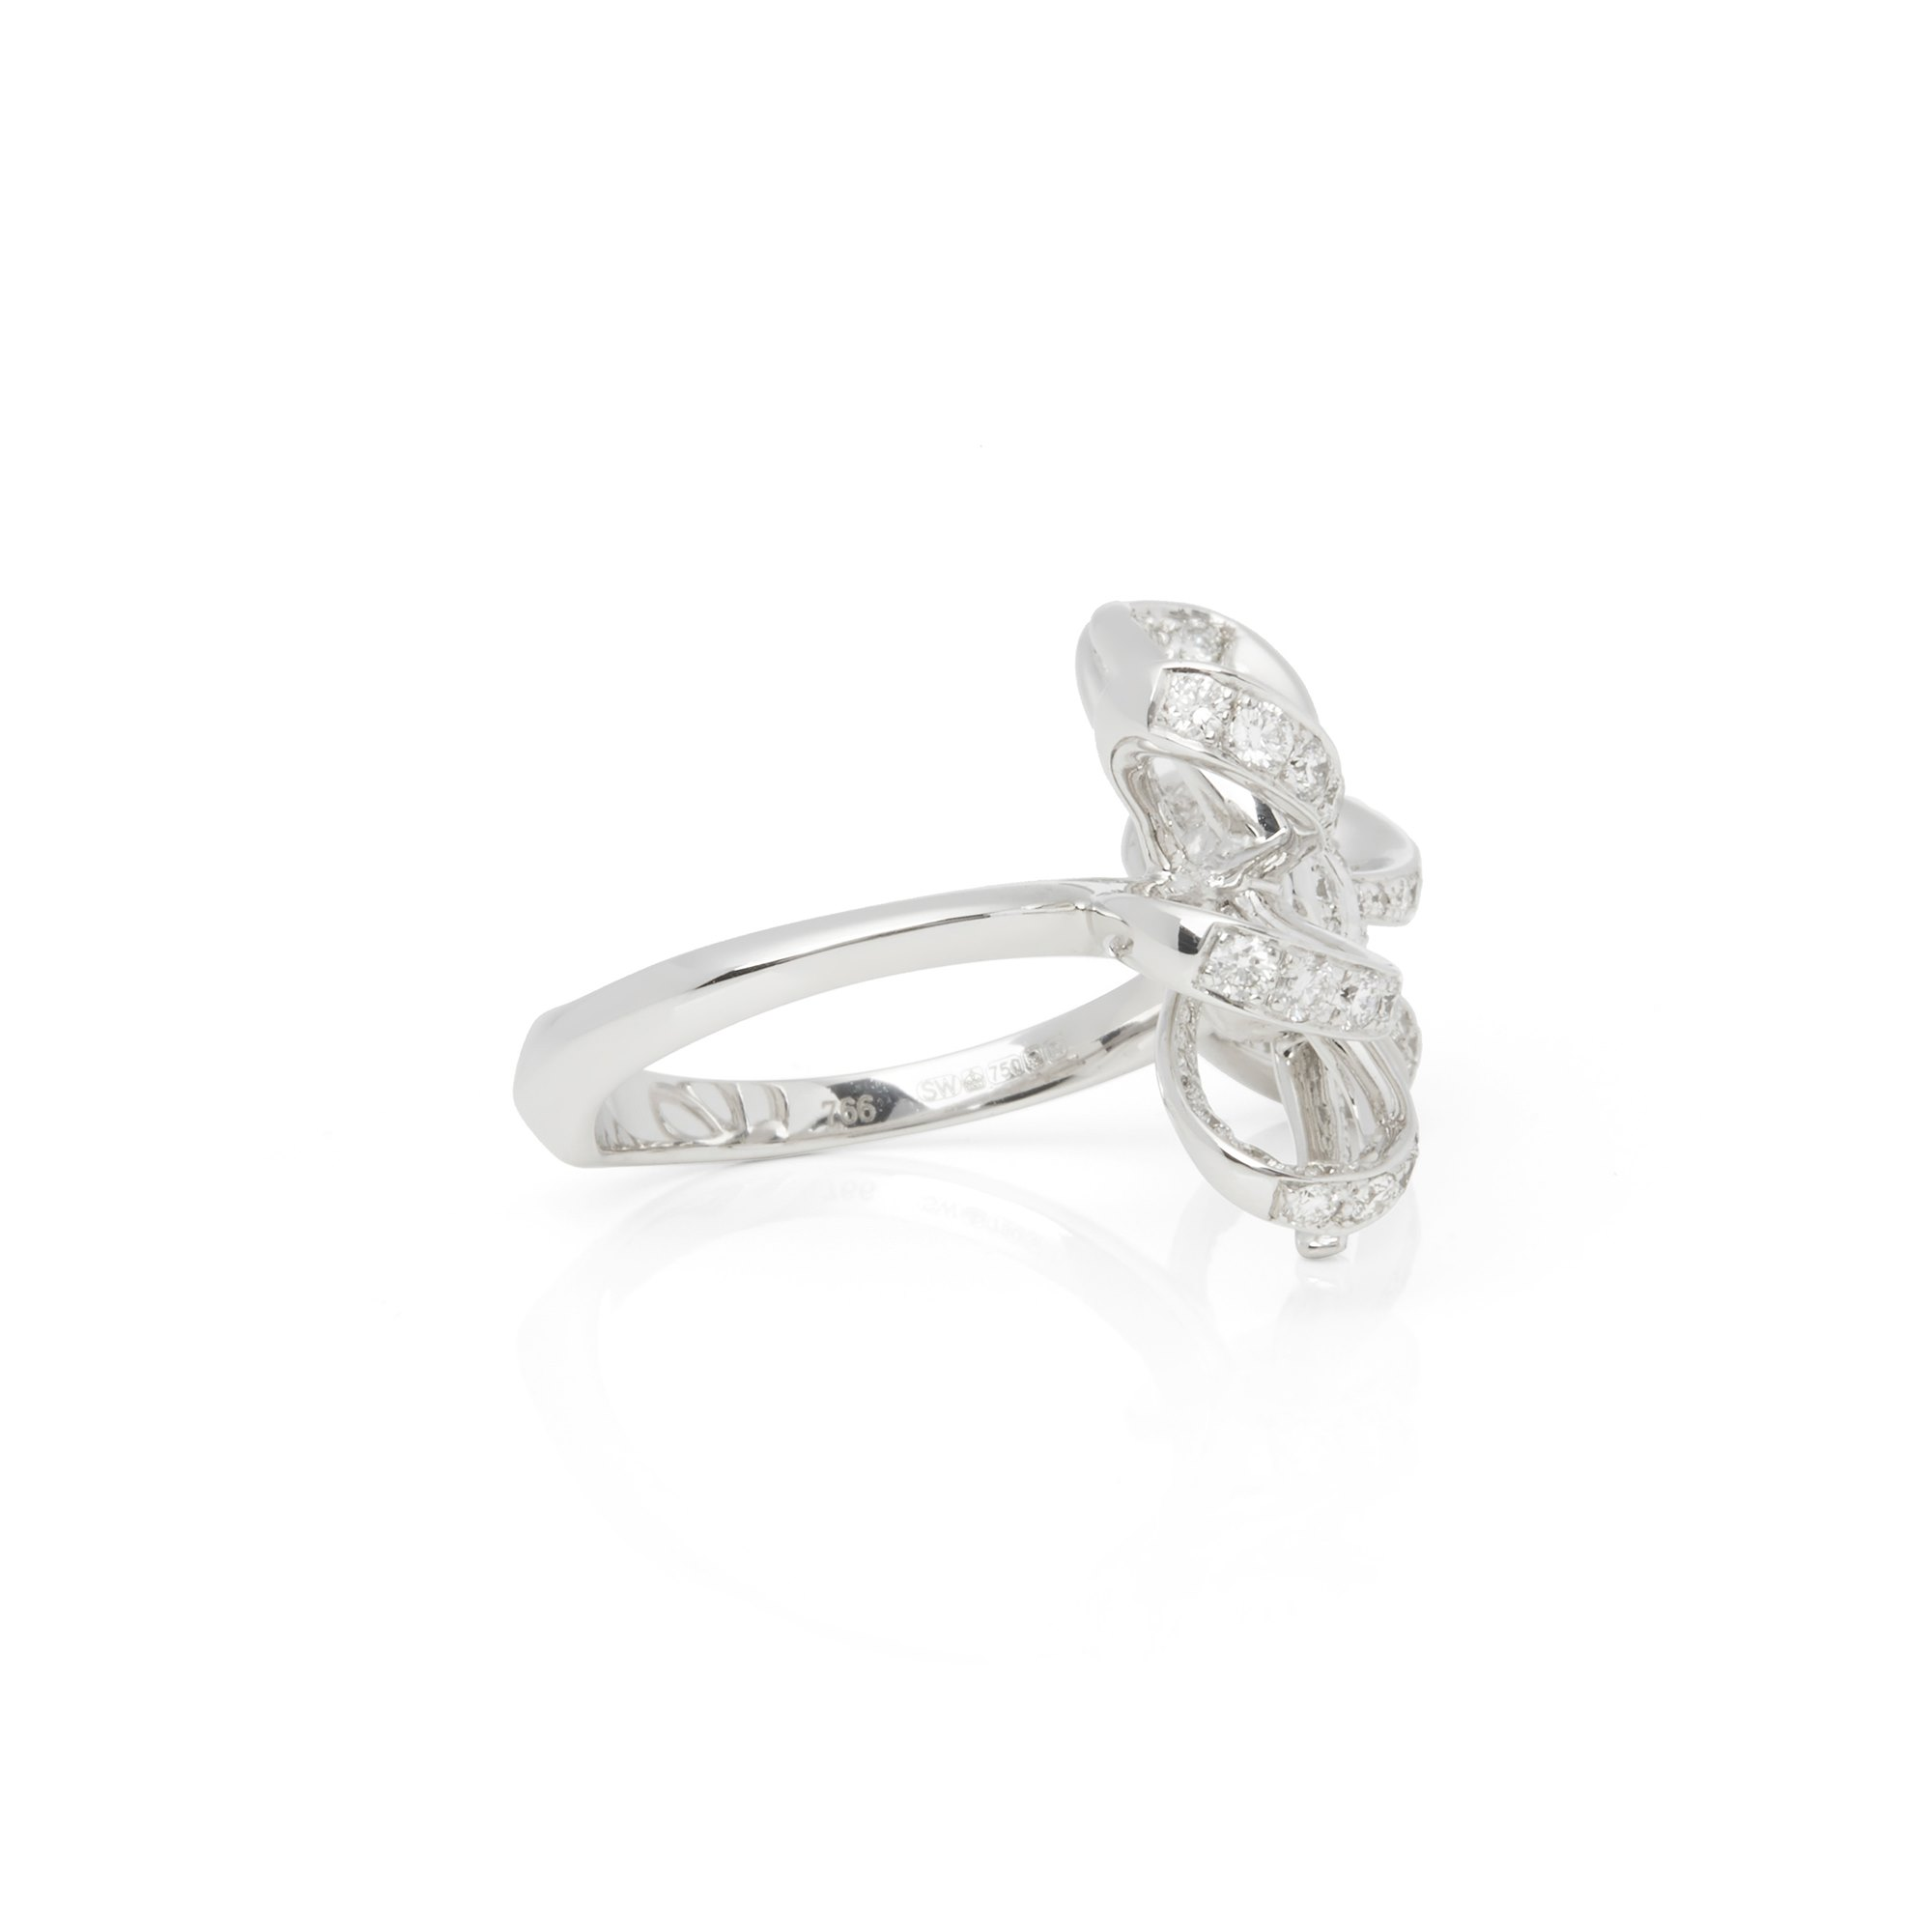 Stephen Webster 18k White Gold Forget Me Knot Pave Diamond Bow Ring